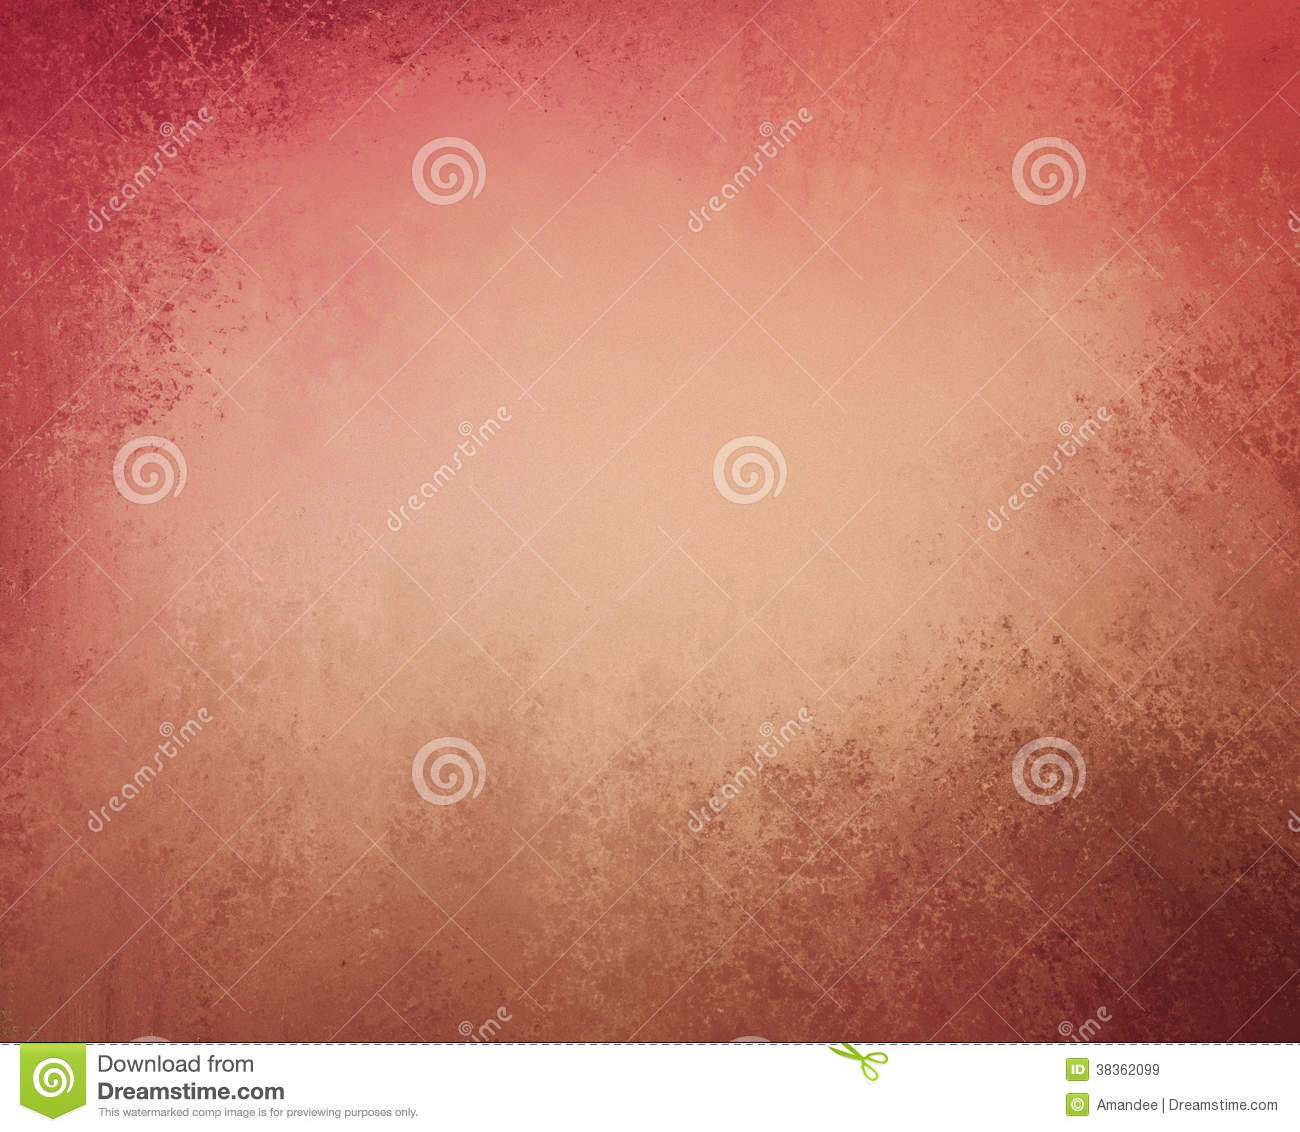 Abstract orange background gold tone center and dark orange border warm colors